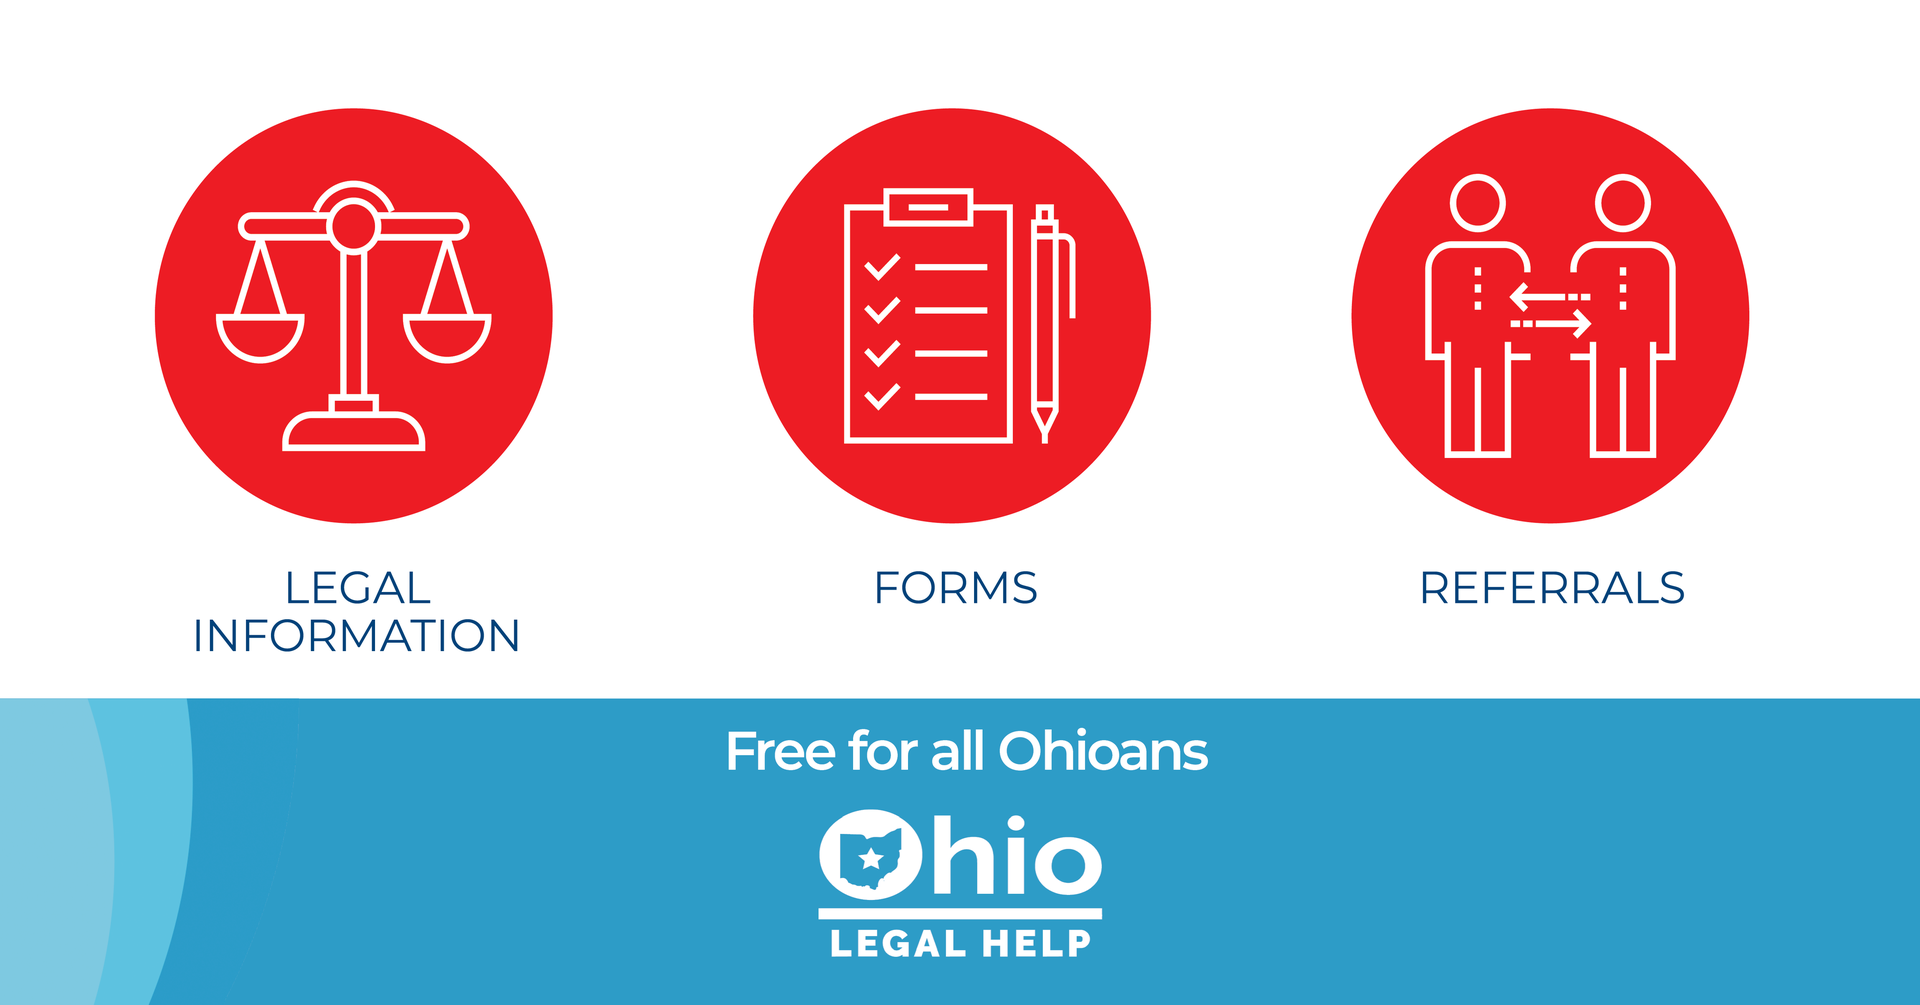 Need legal information, forms or a lawyer? | Ohio Legal Help